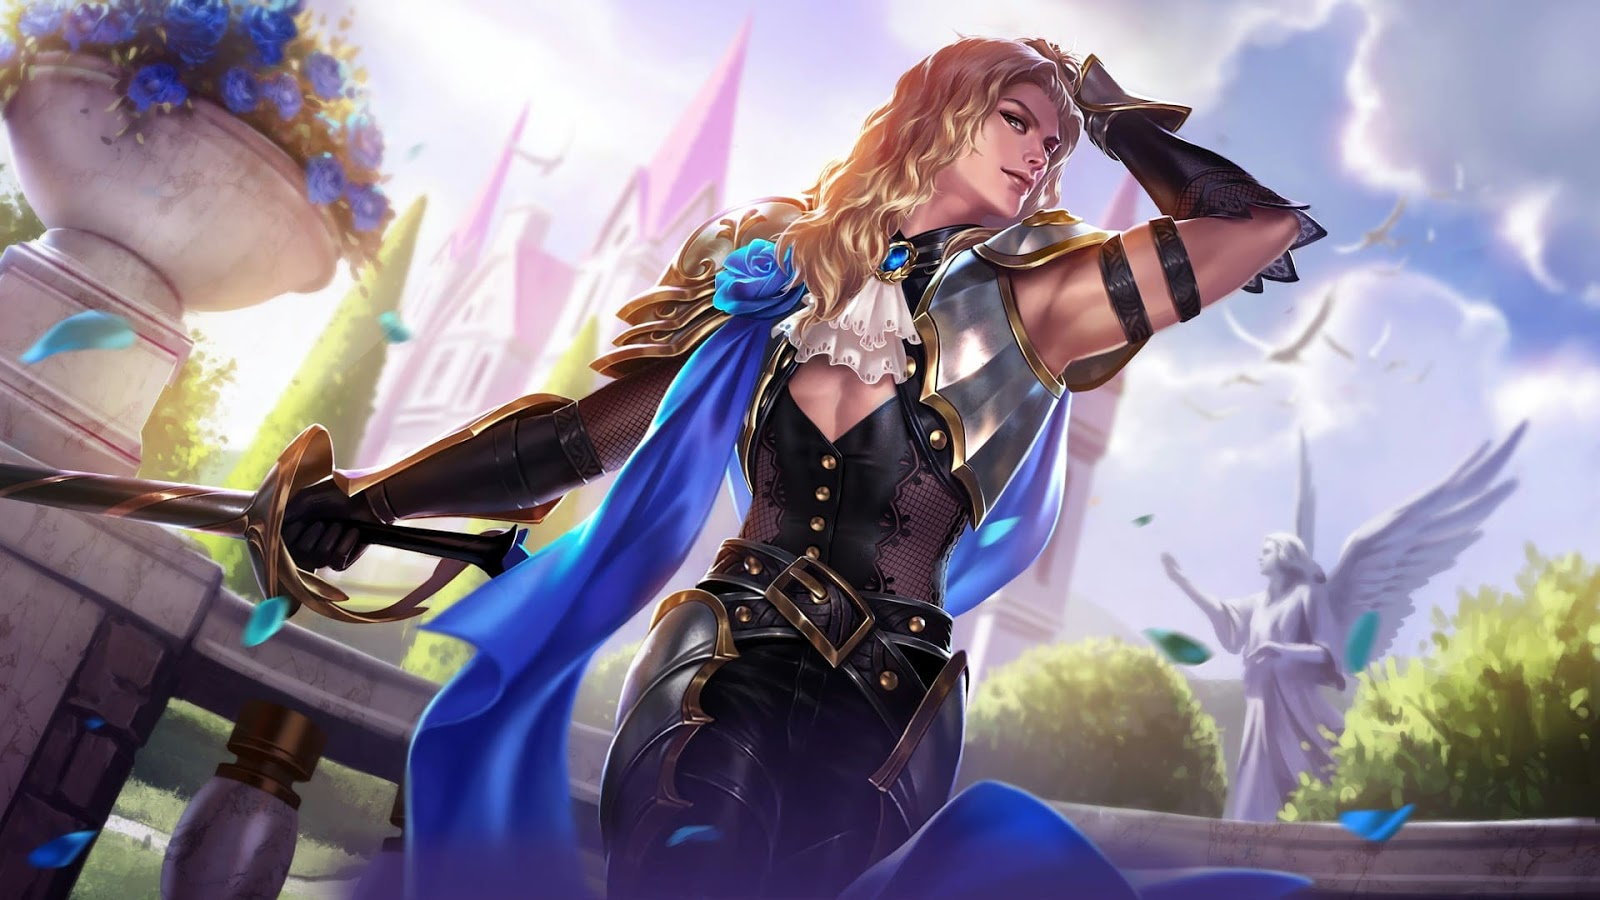 Wallpaper Lancelot Perfumed Knight Skin Mobile Legends HD for PC